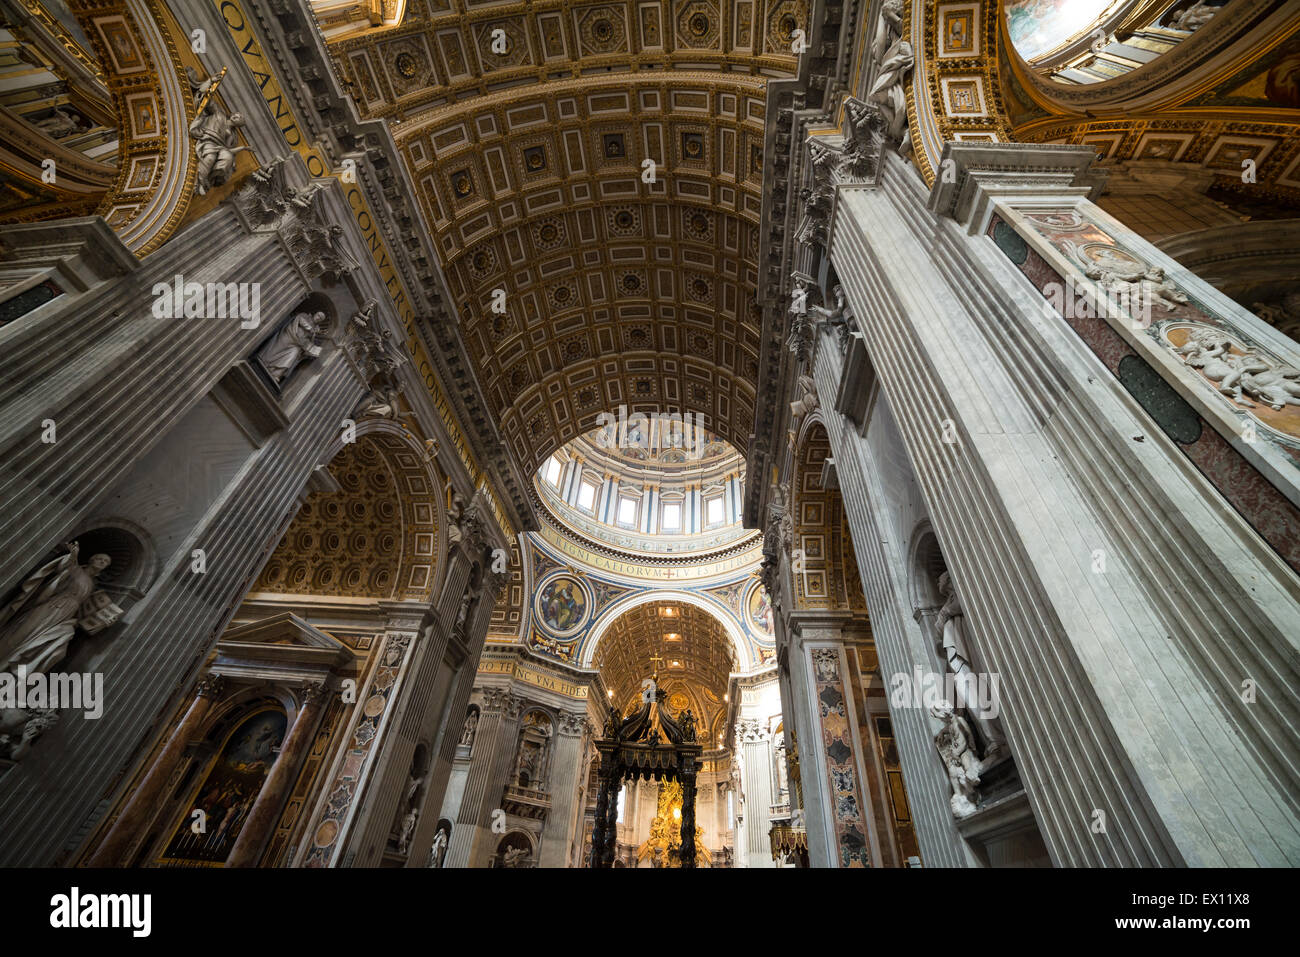 Interior of St. Peter's Basilica - Stock Image